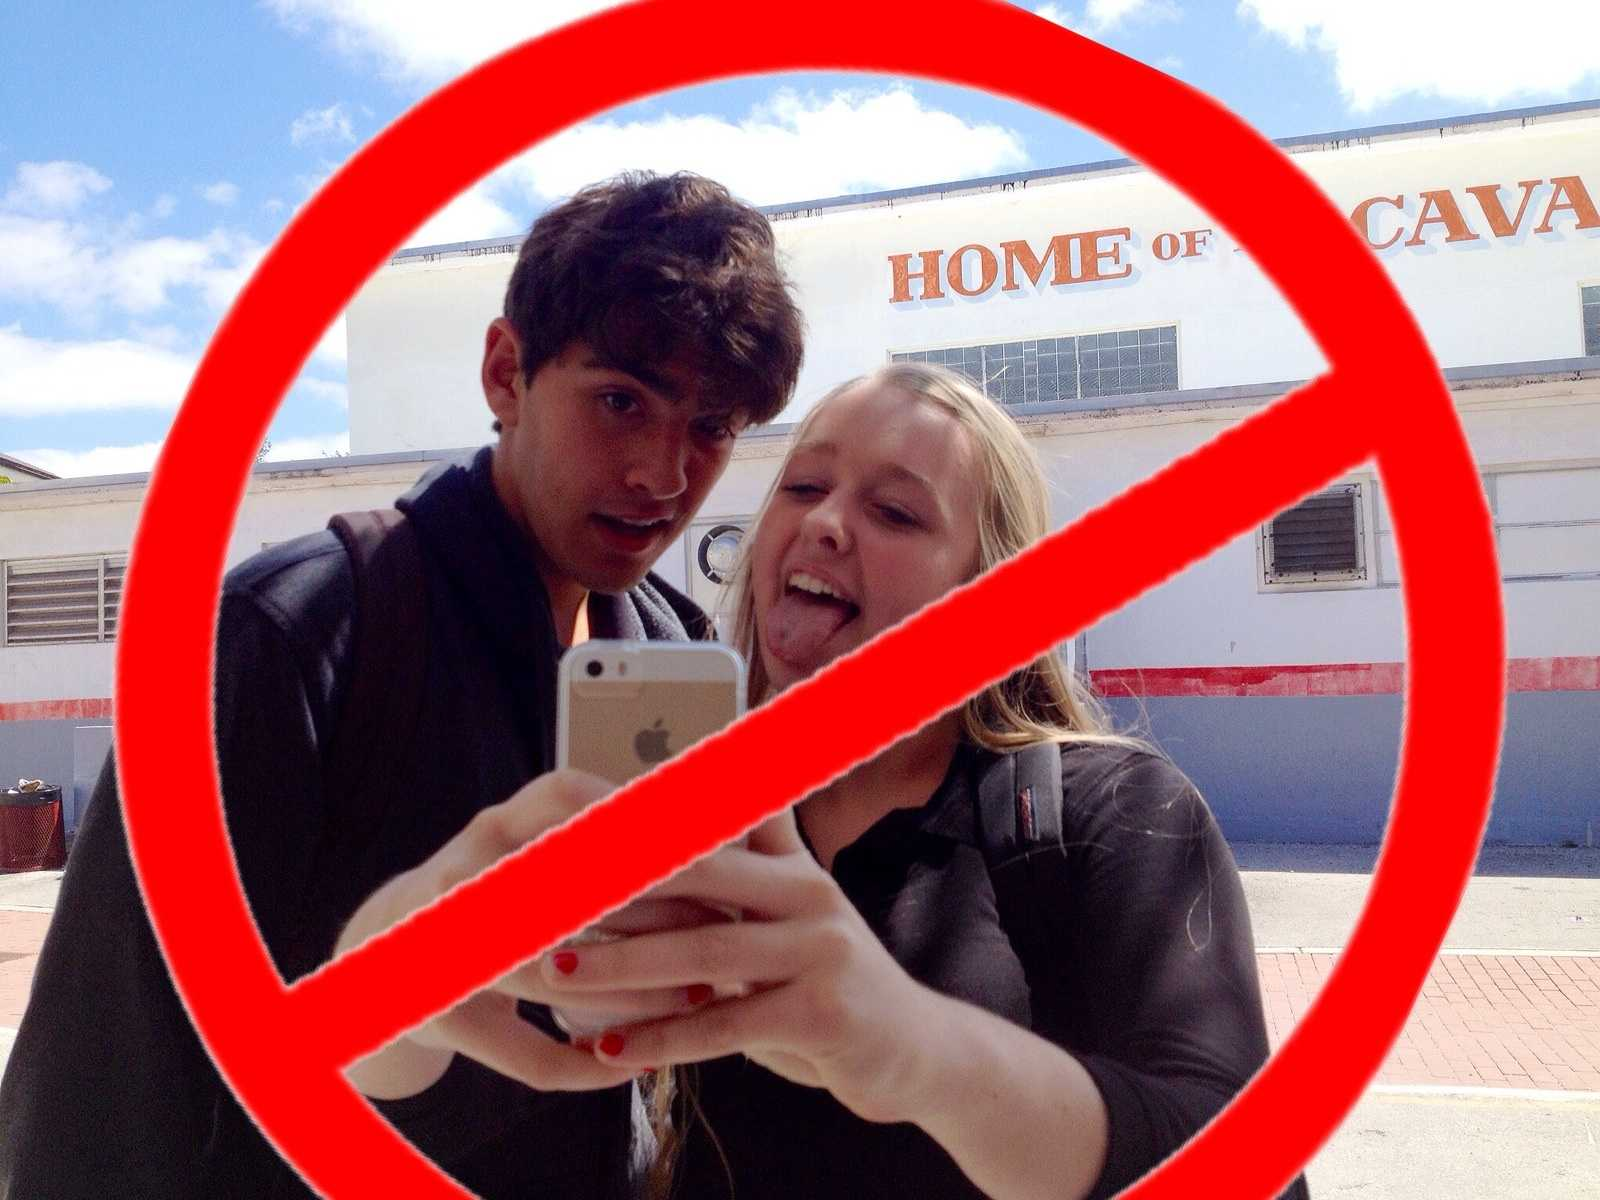 Freshman Cassidy Wall and senior Christian Diaz take countless selfies, behavior that Britain announced on April Fools' Day it was banning.